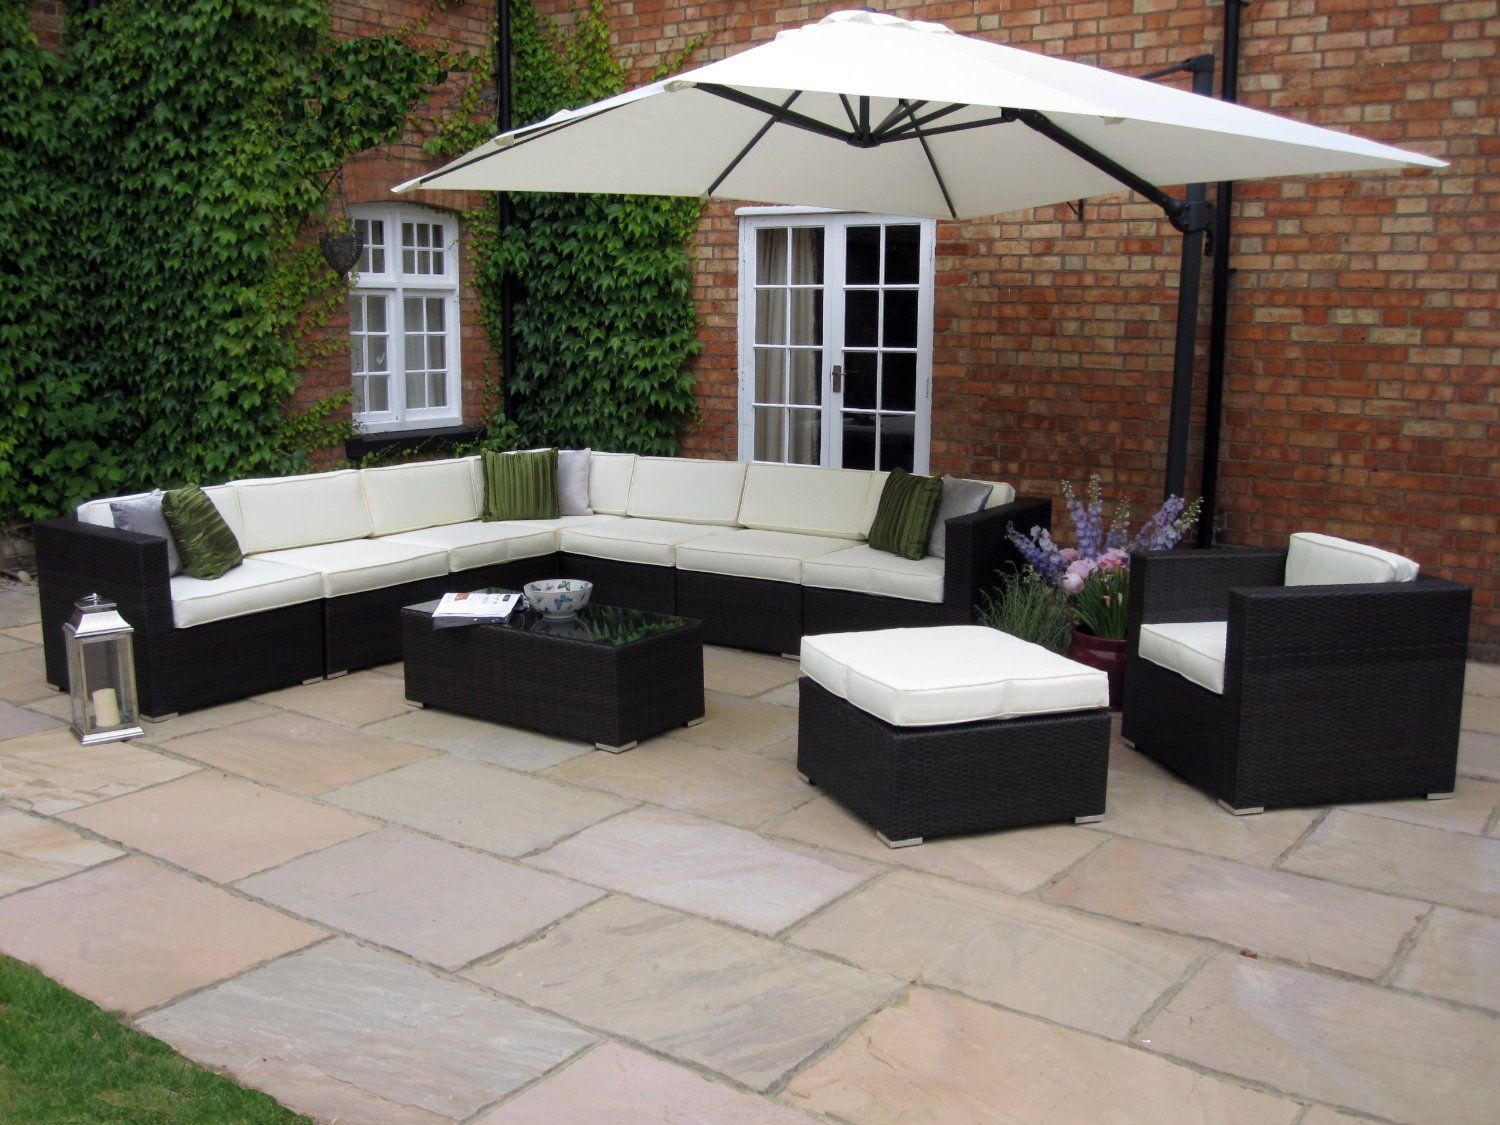 oakita rattan garden furniture corner sofa and king parasol - Garden Furniture King